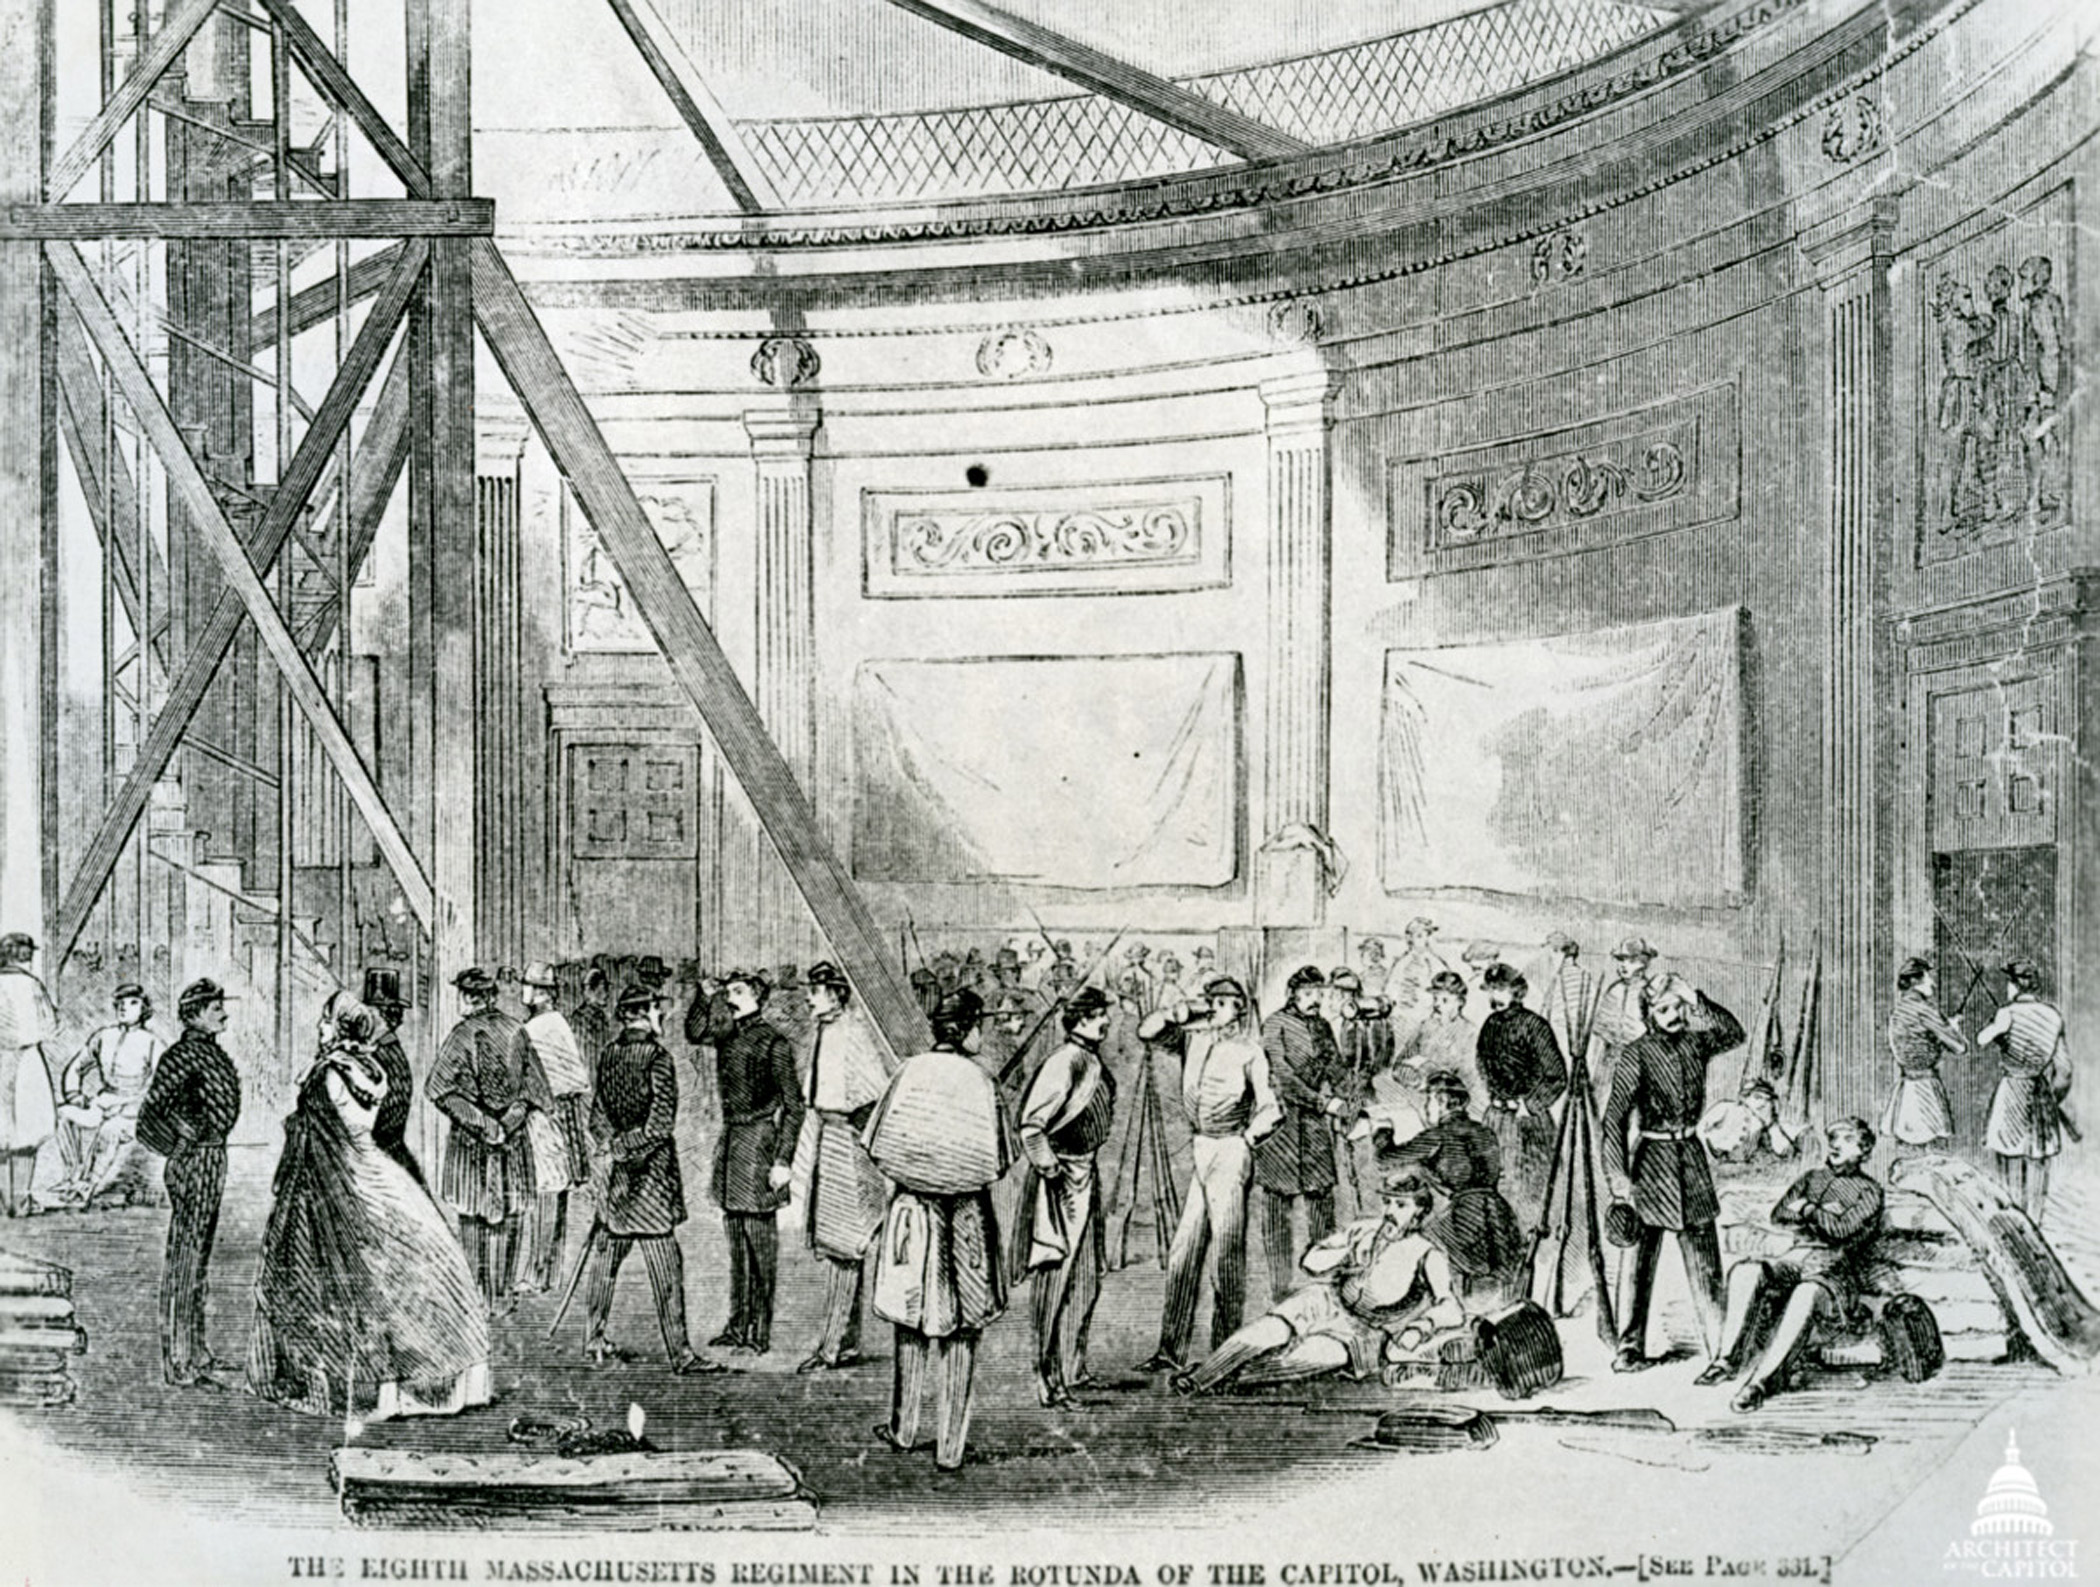 This image depicts Union troops in the rotunda with the scaffolding to build the new dome in 1861.